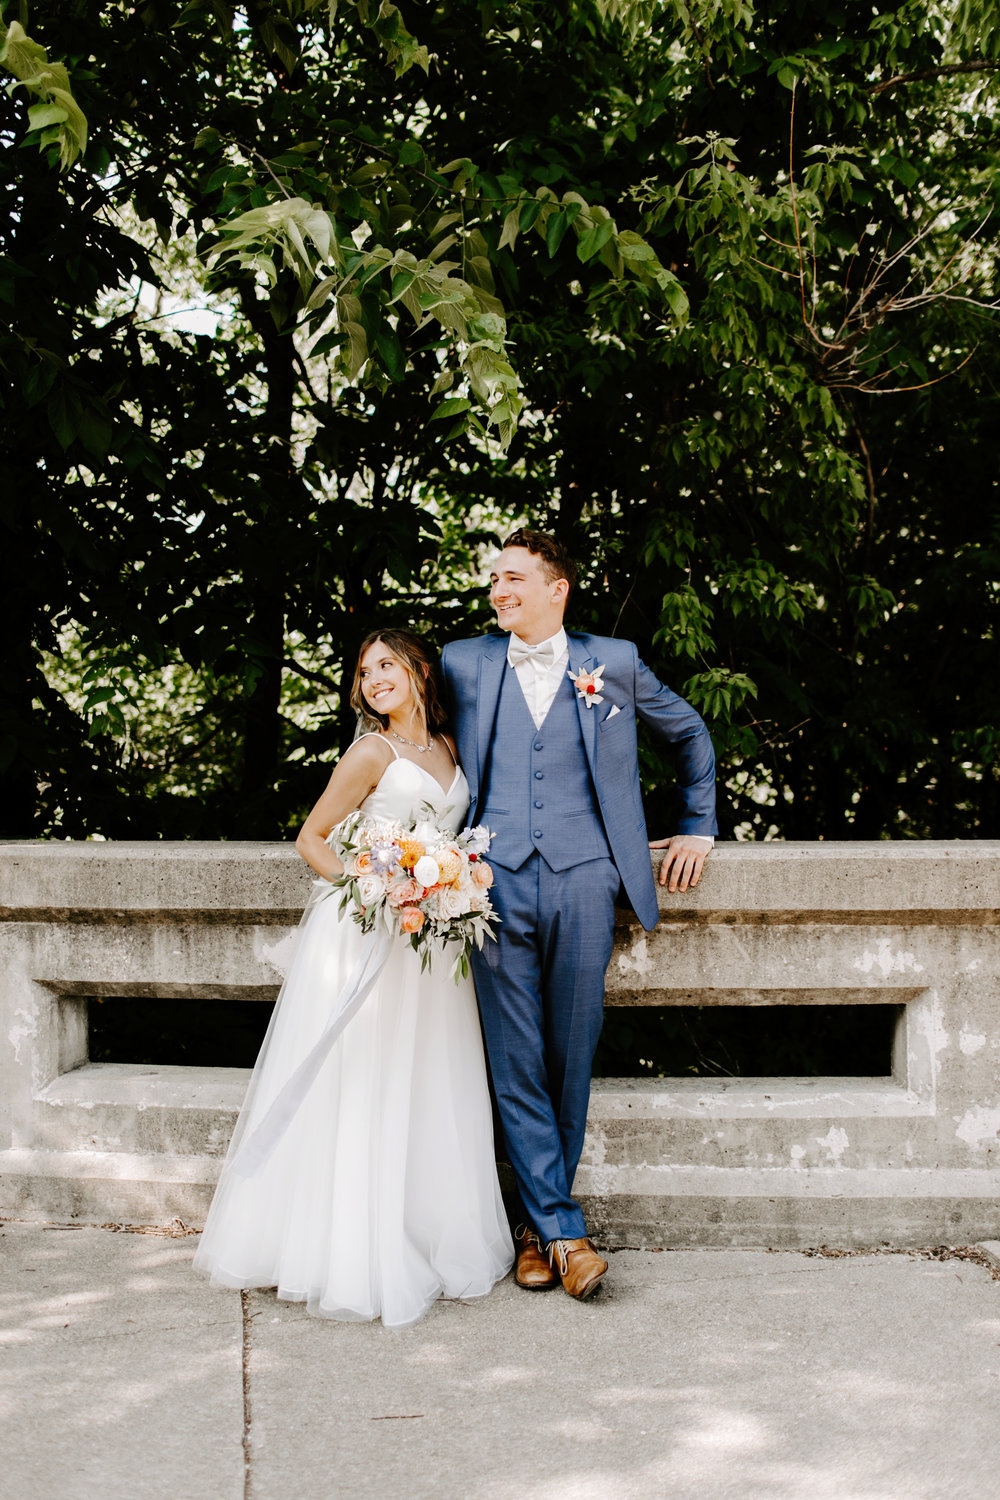 Claire and James Indianapolis Wedding The Tube Factory Emily Elyse Wehner Photography LLC-198.jpg